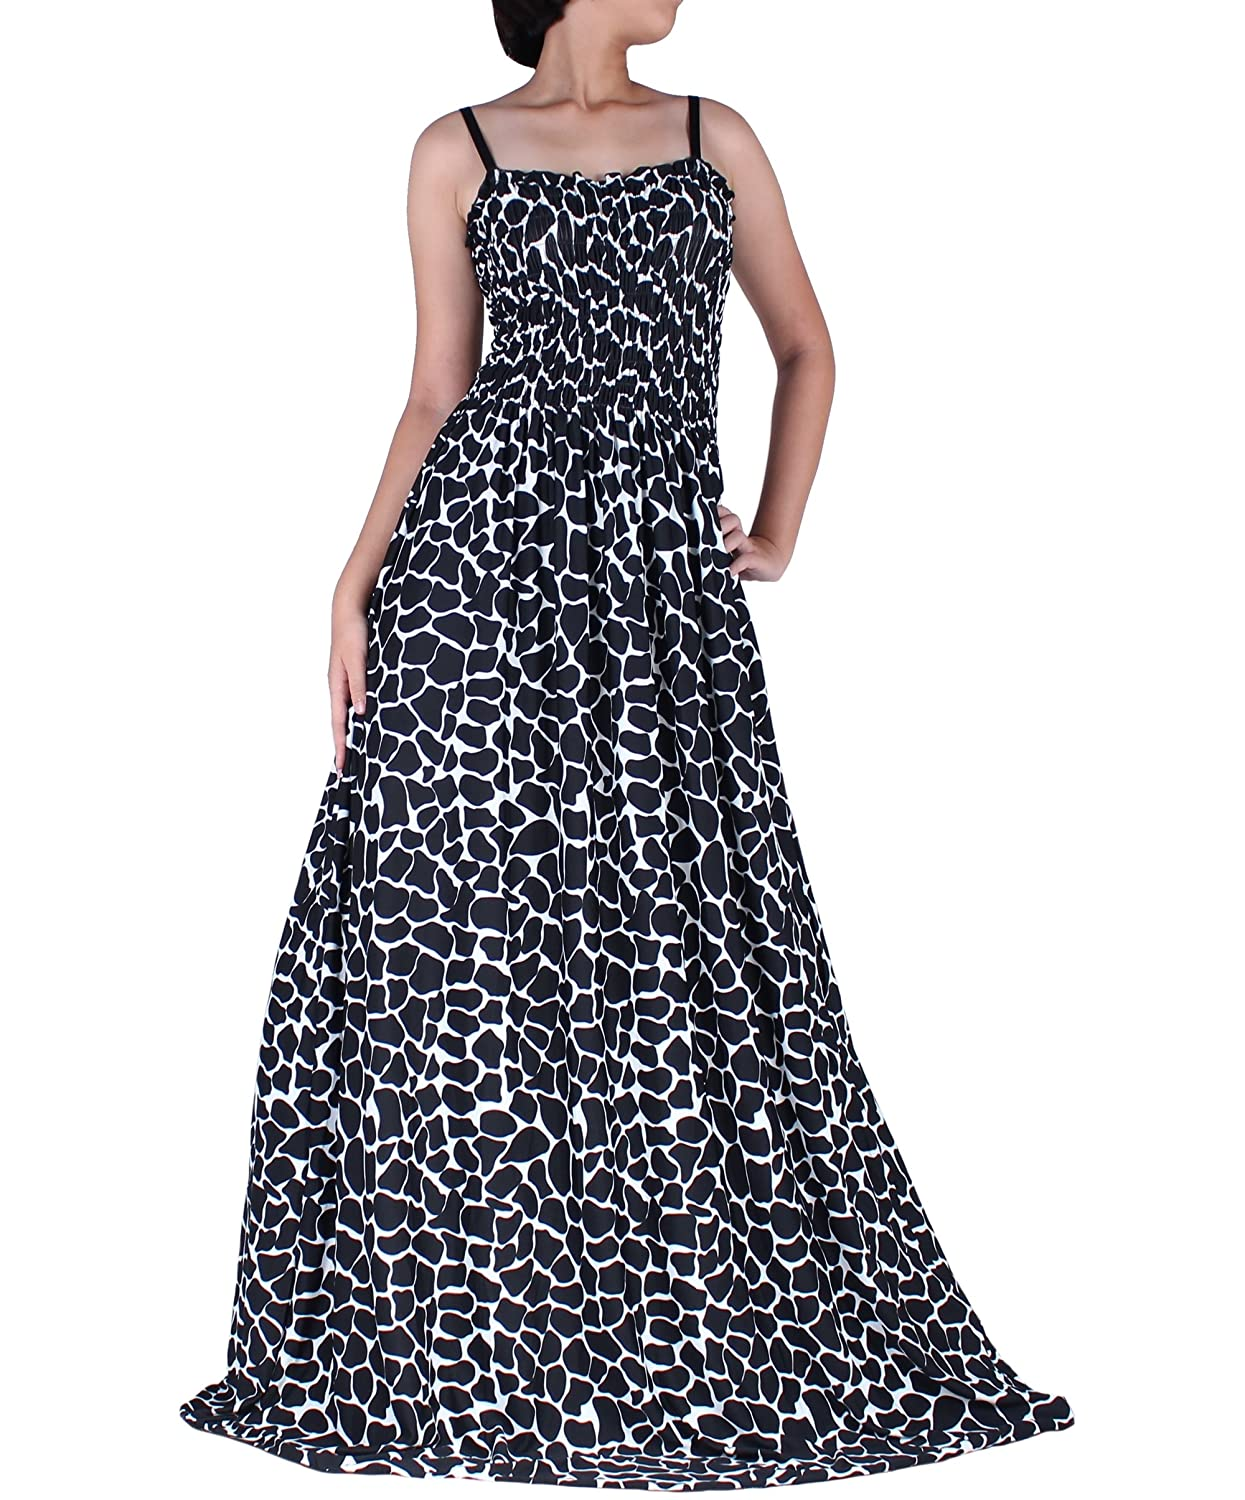 Women Plus Size Maxi Clothing Wide Flare Hem Party Dress Evening High Tea  Casual Dinner B&W